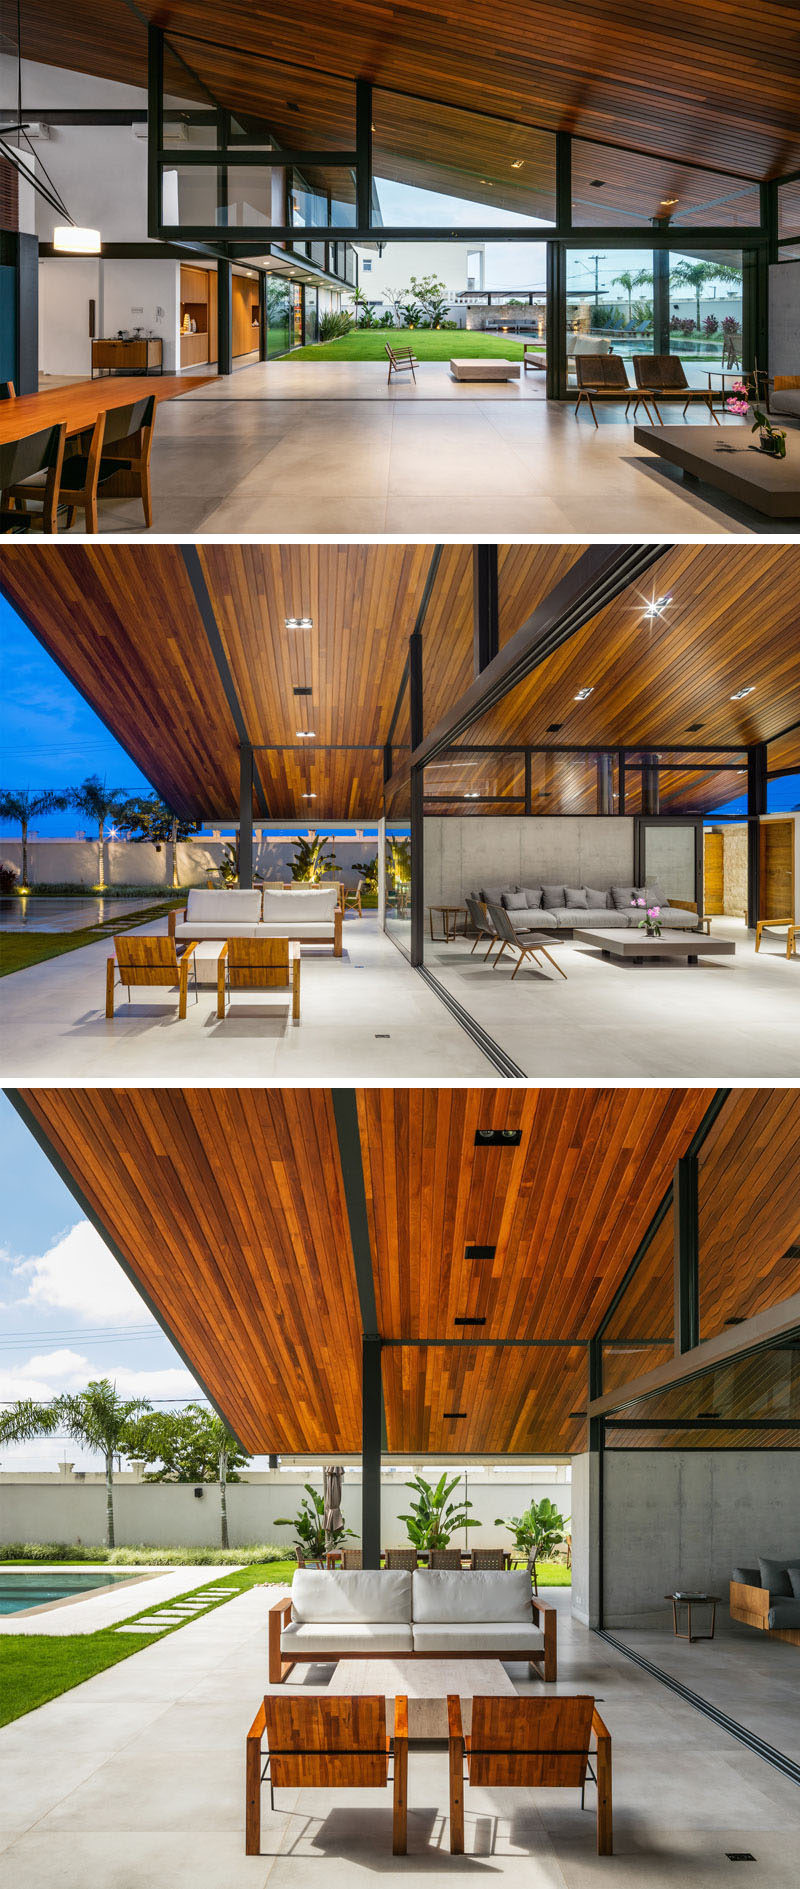 A Large Sloping Roof Is A Prominent Feature Of This New House In Brazil